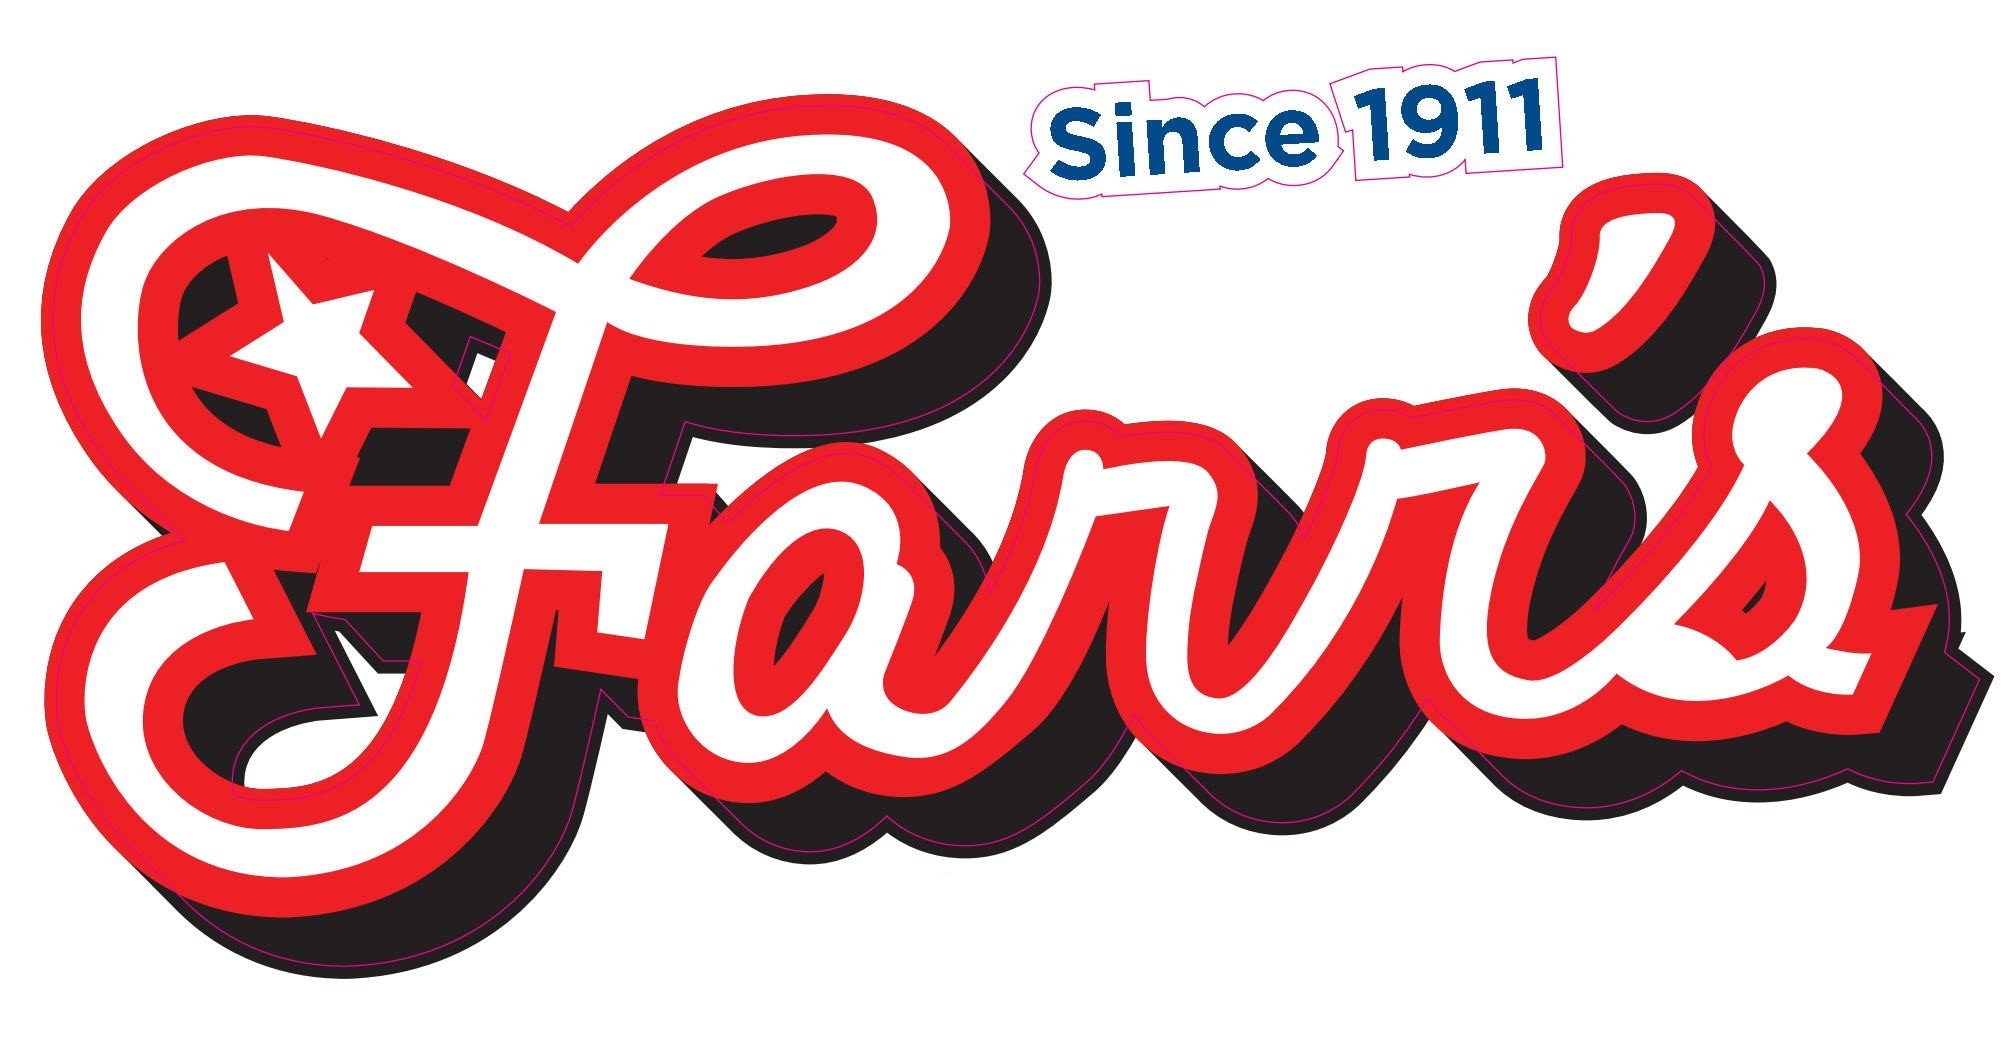 Farr Candy Company Inc.